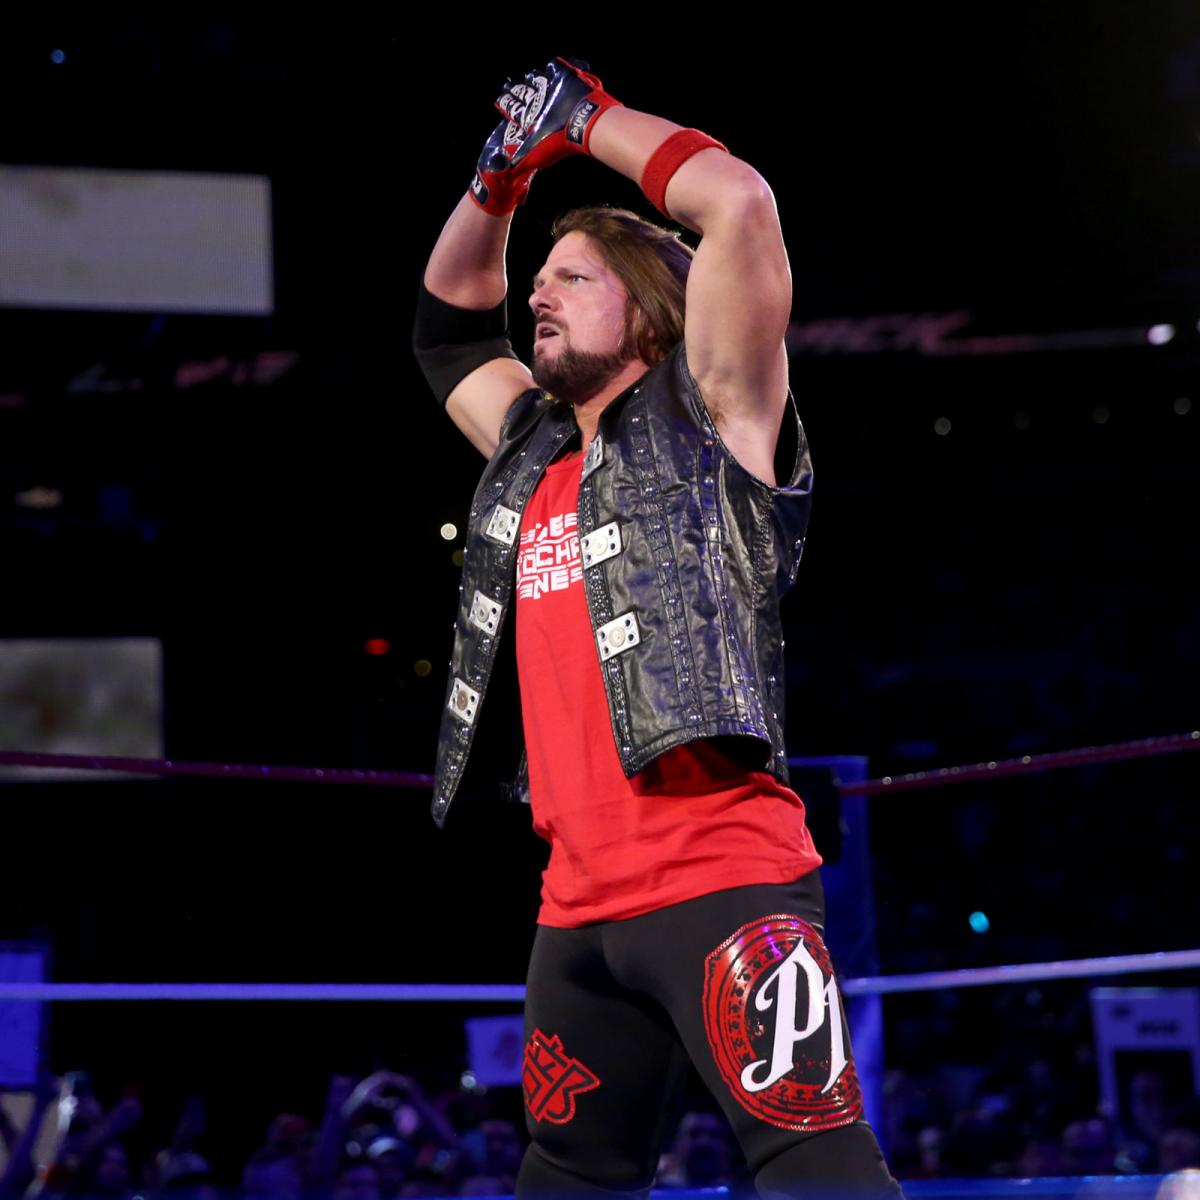 AJ Styles Wins US Championship at WWE MSG